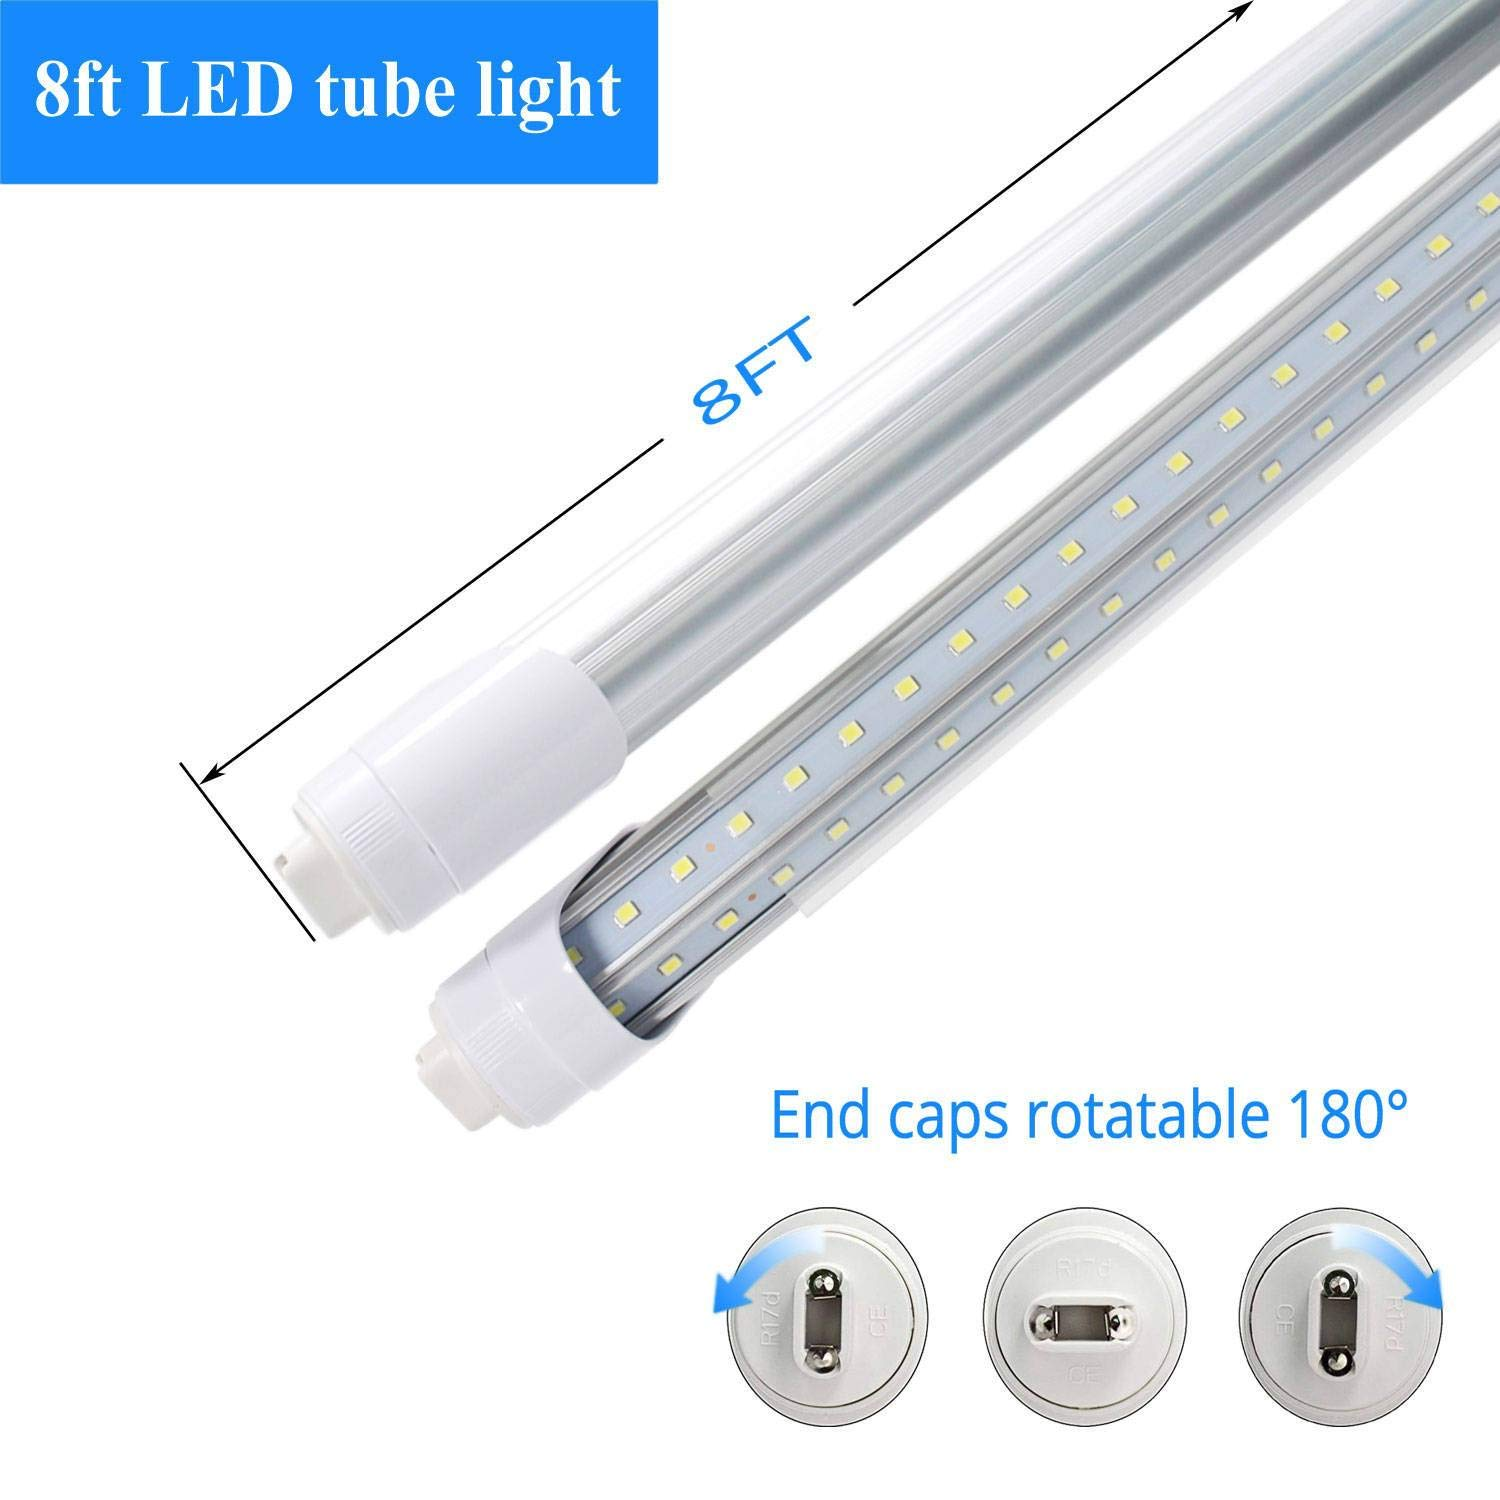 JESLED R17D/HO 8FT LED Bulb - Rotate V shaped, 5000K Daylight 50W, 6750LM, 110W Equivalent F96T12/DW/HO, Clear Cover, T8/T10/T12 Replacement, Dual-Ended Powered, Ballast Bypass, Pack of 12 by JESLED (Image #3)